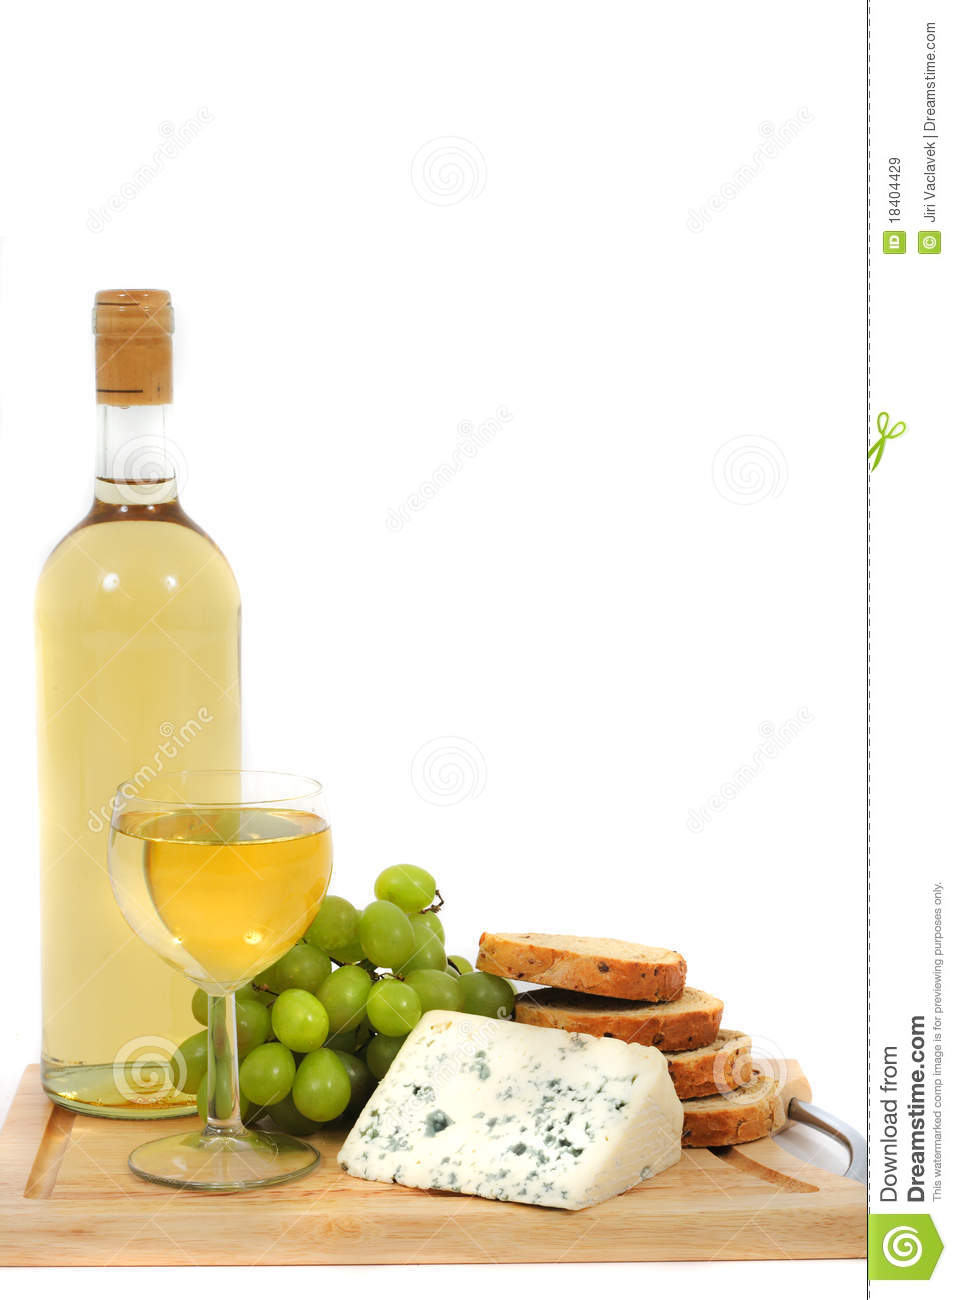 Wine, Grapes, Cheese And Bread Royalty Free Stock Images - Image ...